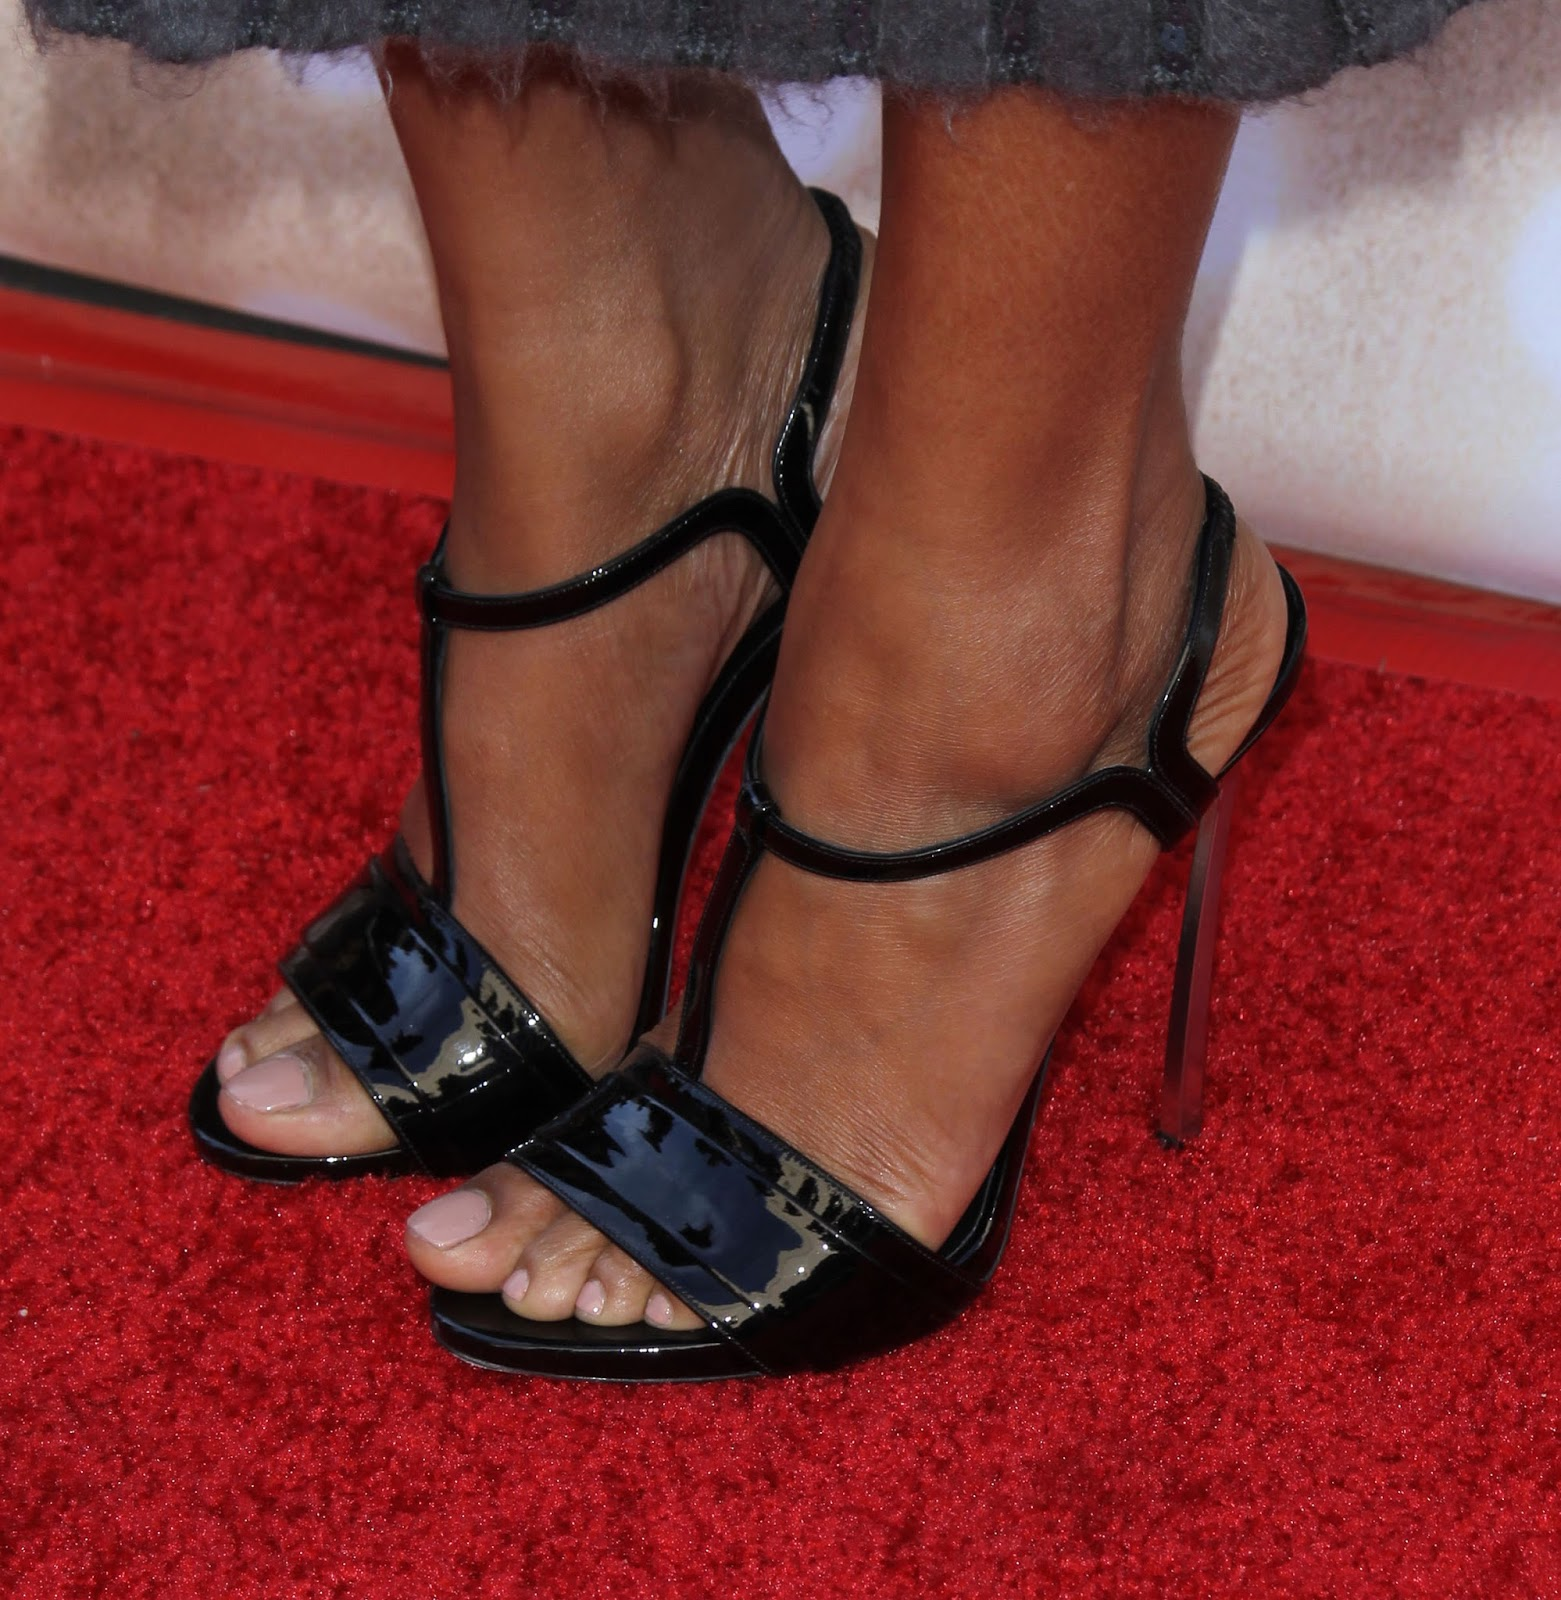 Feet Taraji P. Henson nude (54 foto and video), Pussy, Leaked, Twitter, braless 2018